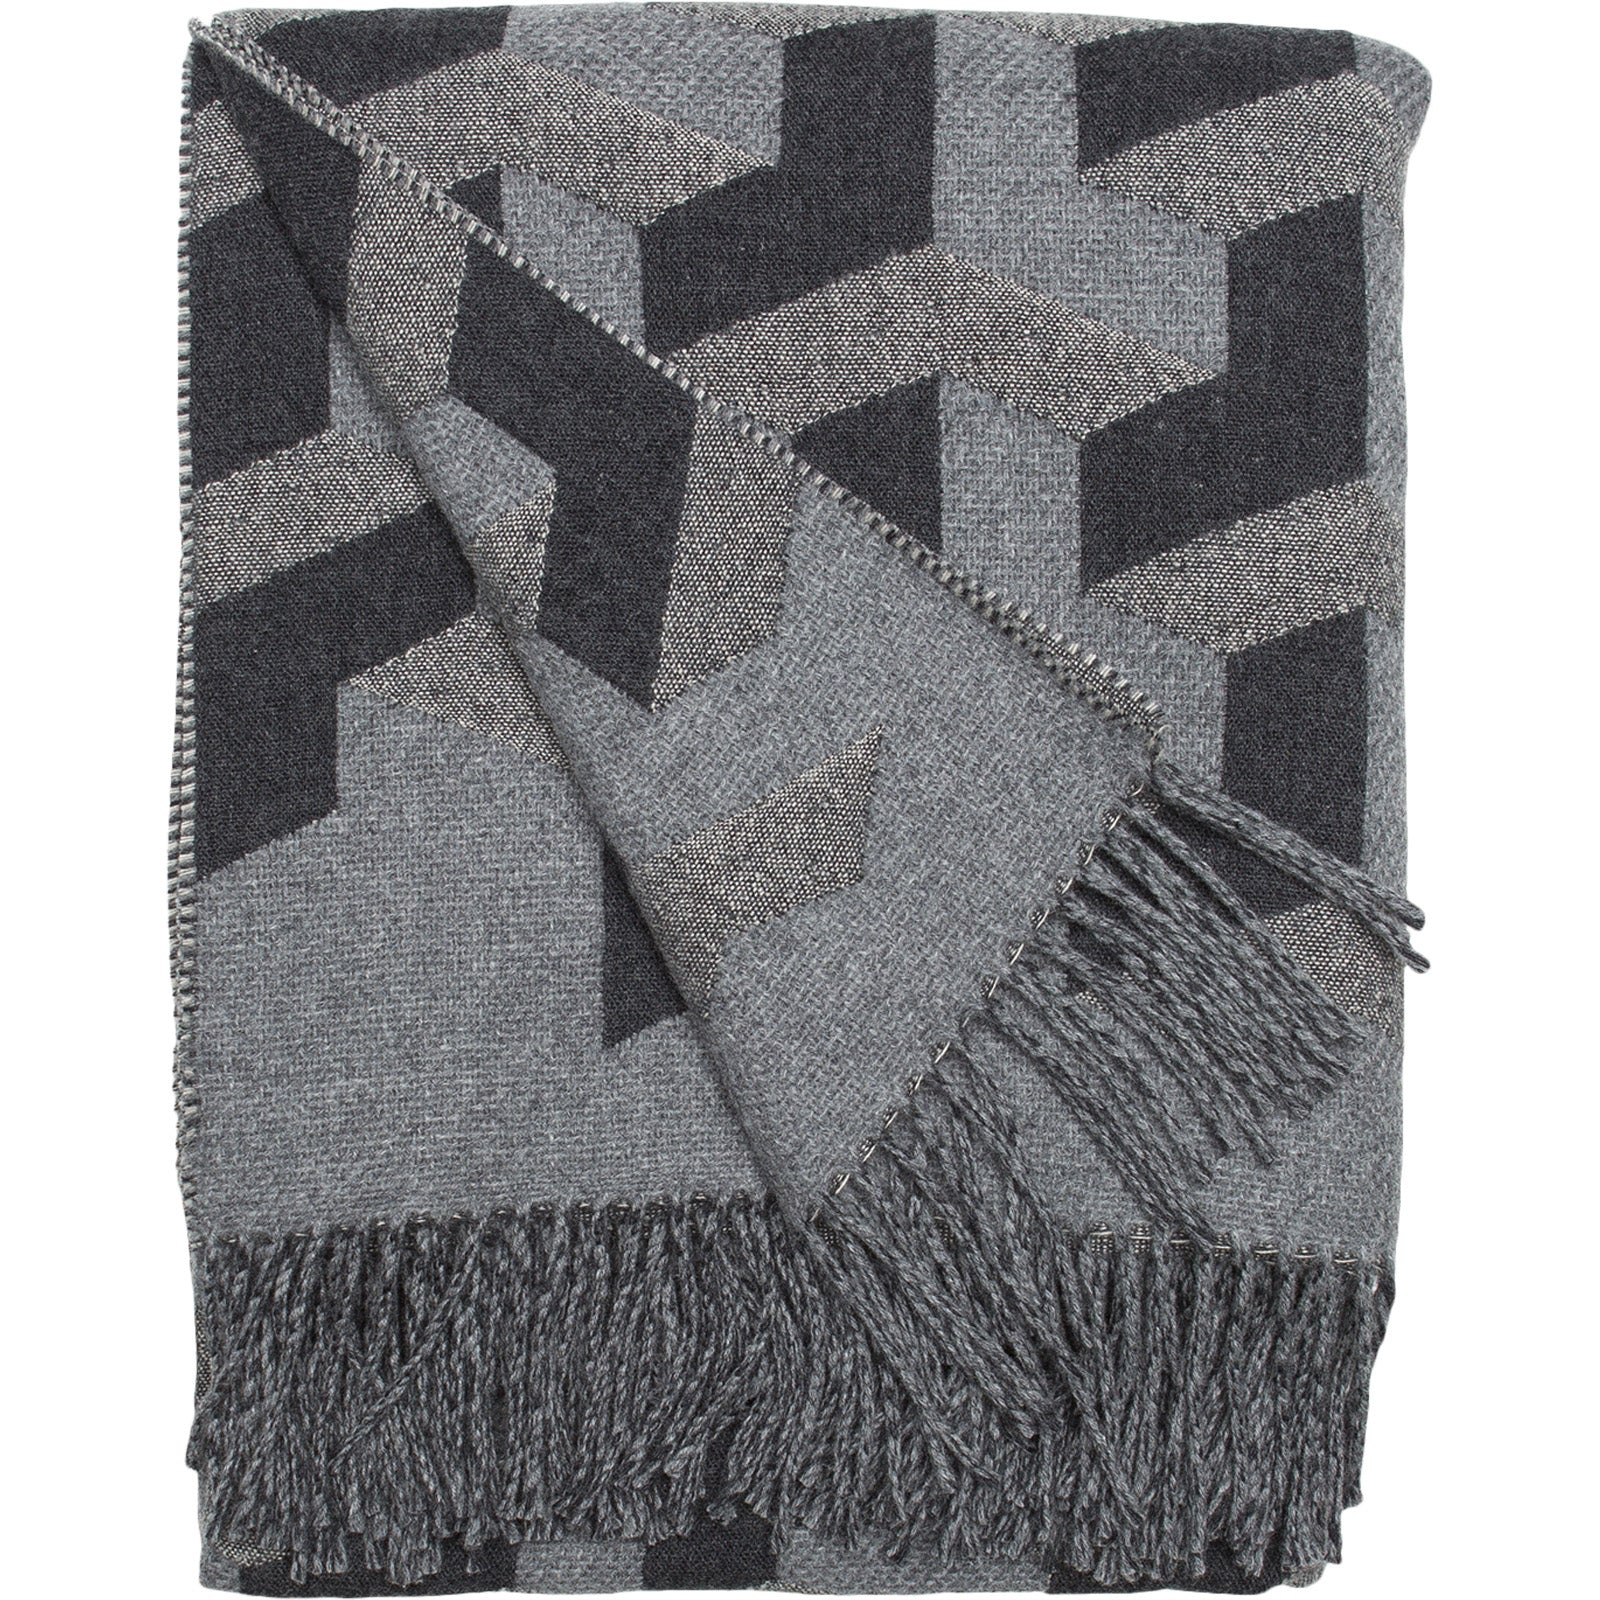 Monochrome Triolux Sivill Throw